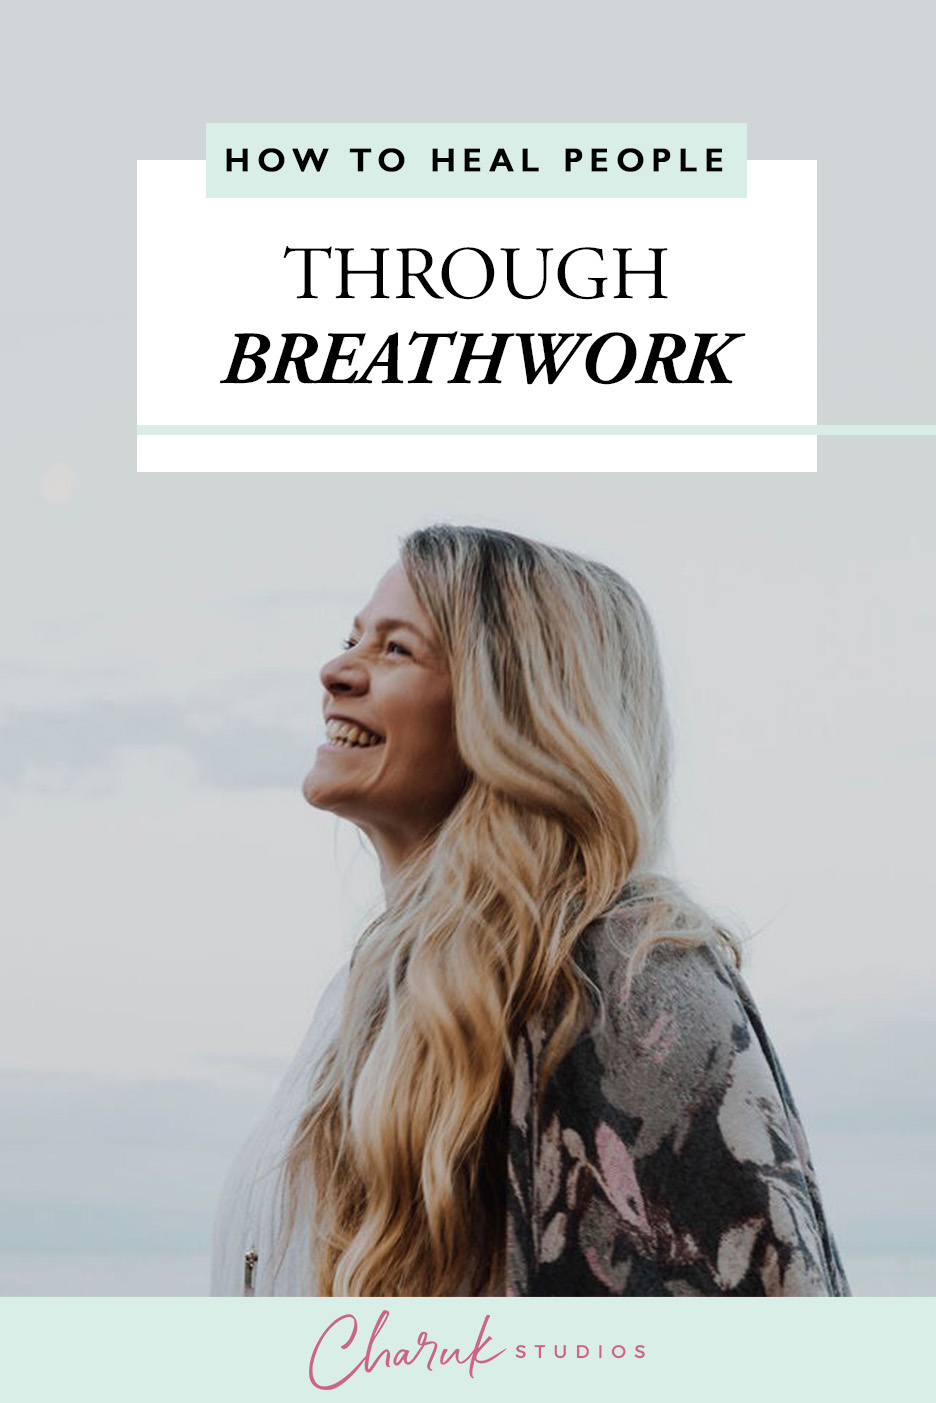 How to Heal People Through Breathwork by Charuk Studios